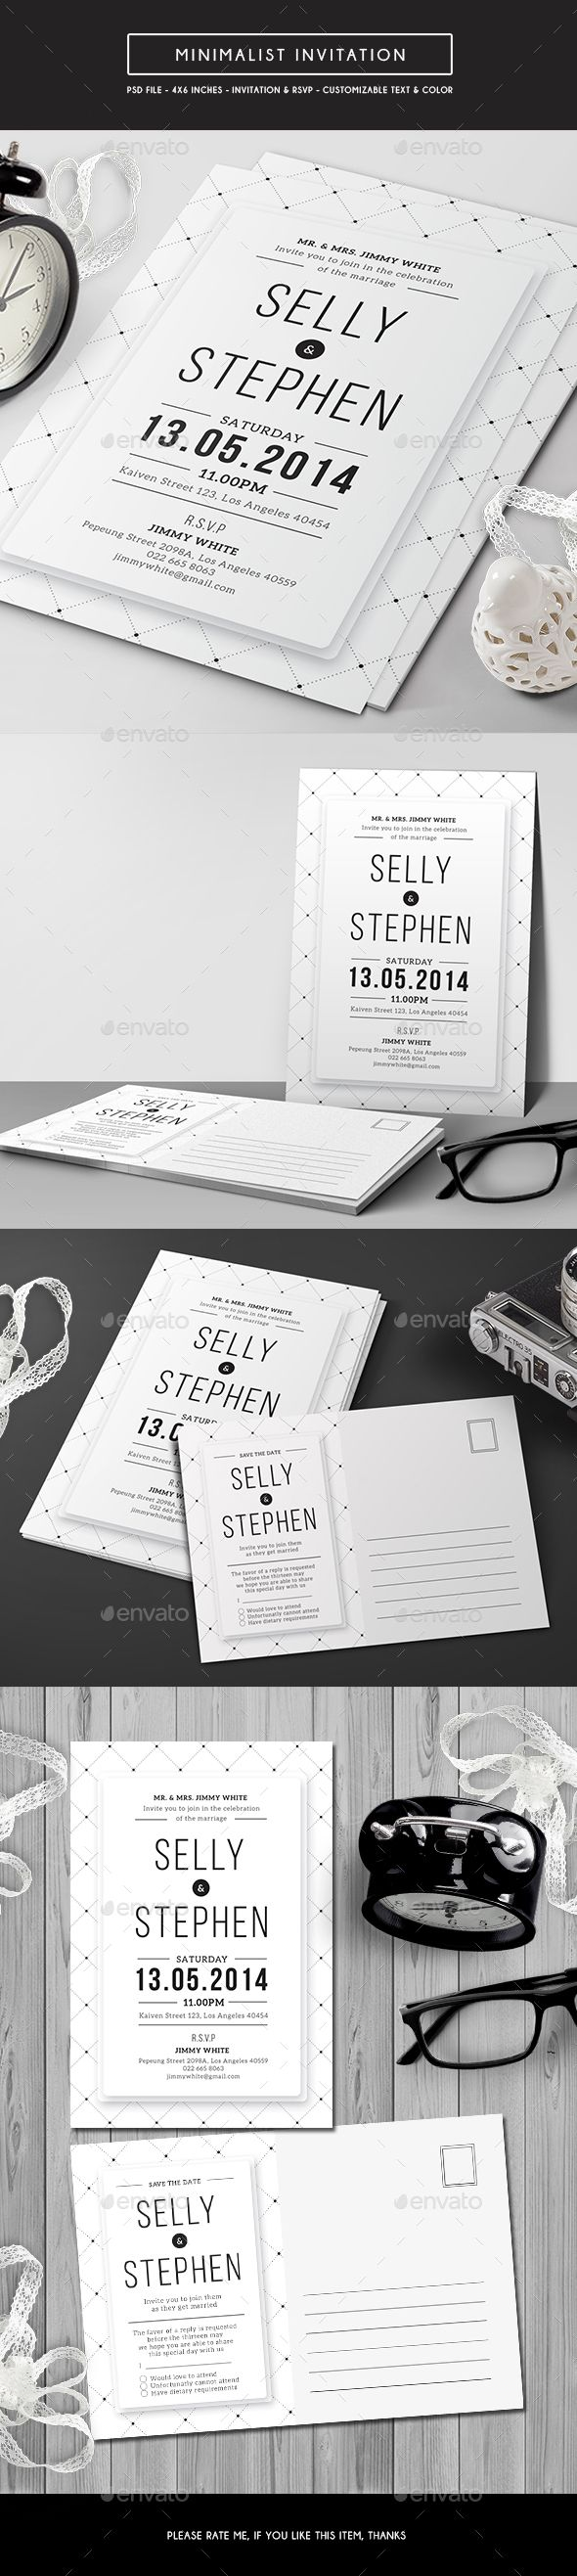 templates for wedding card design%0A Minimalist Invitation